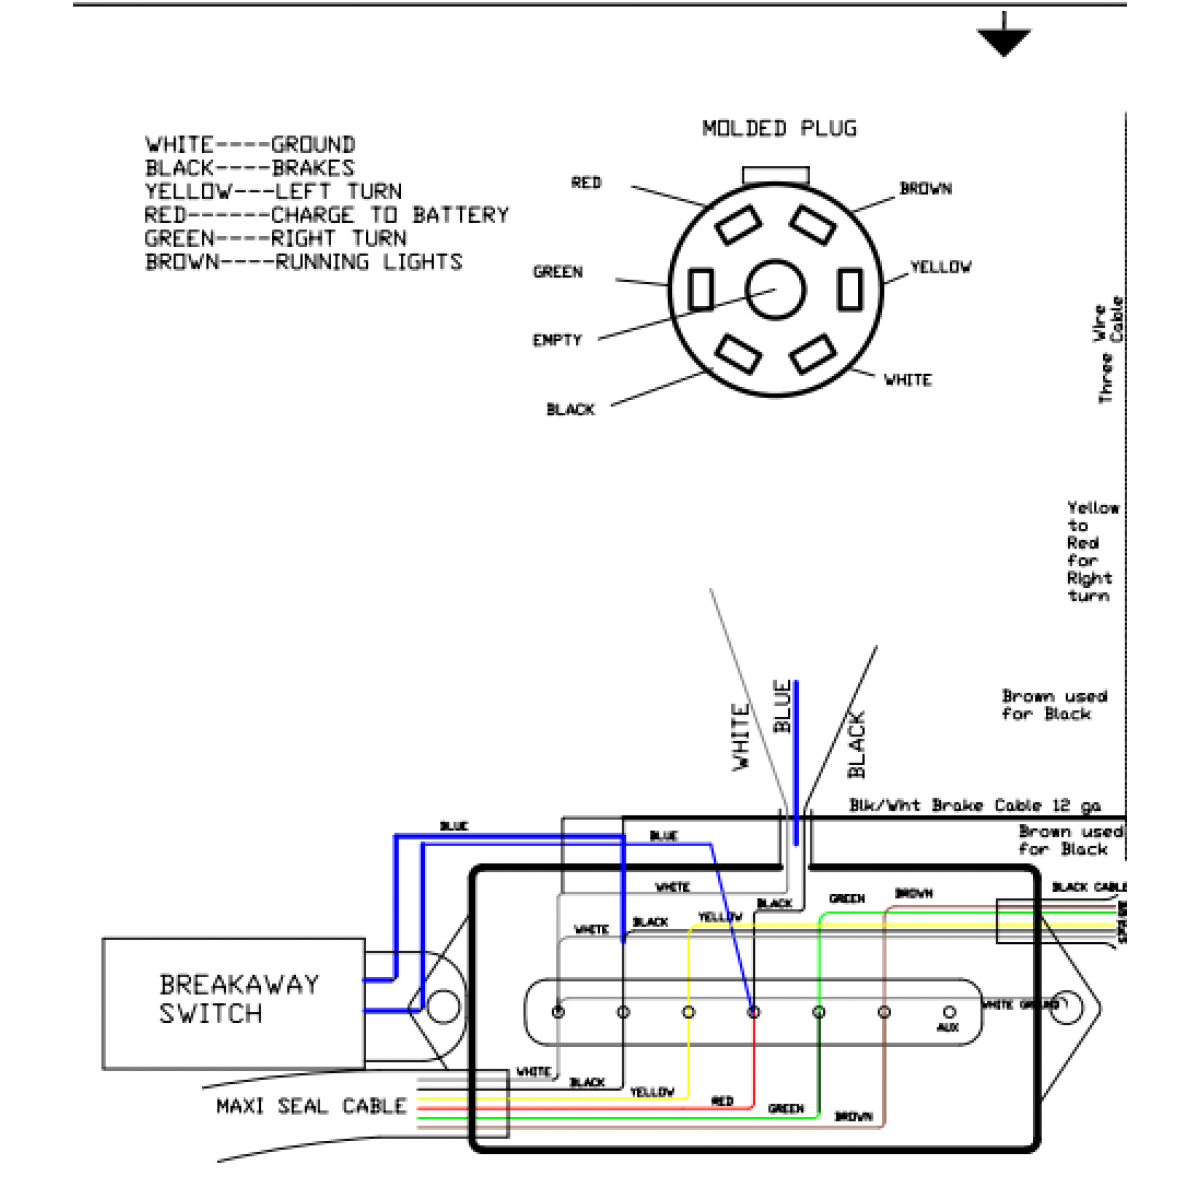 diagram] 7 way bargman plug wiring diagram full version hd quality wiring  diagram - tabellaexpress.amandine-brevelay.fr  tabellaexpress.amandine-brevelay.fr